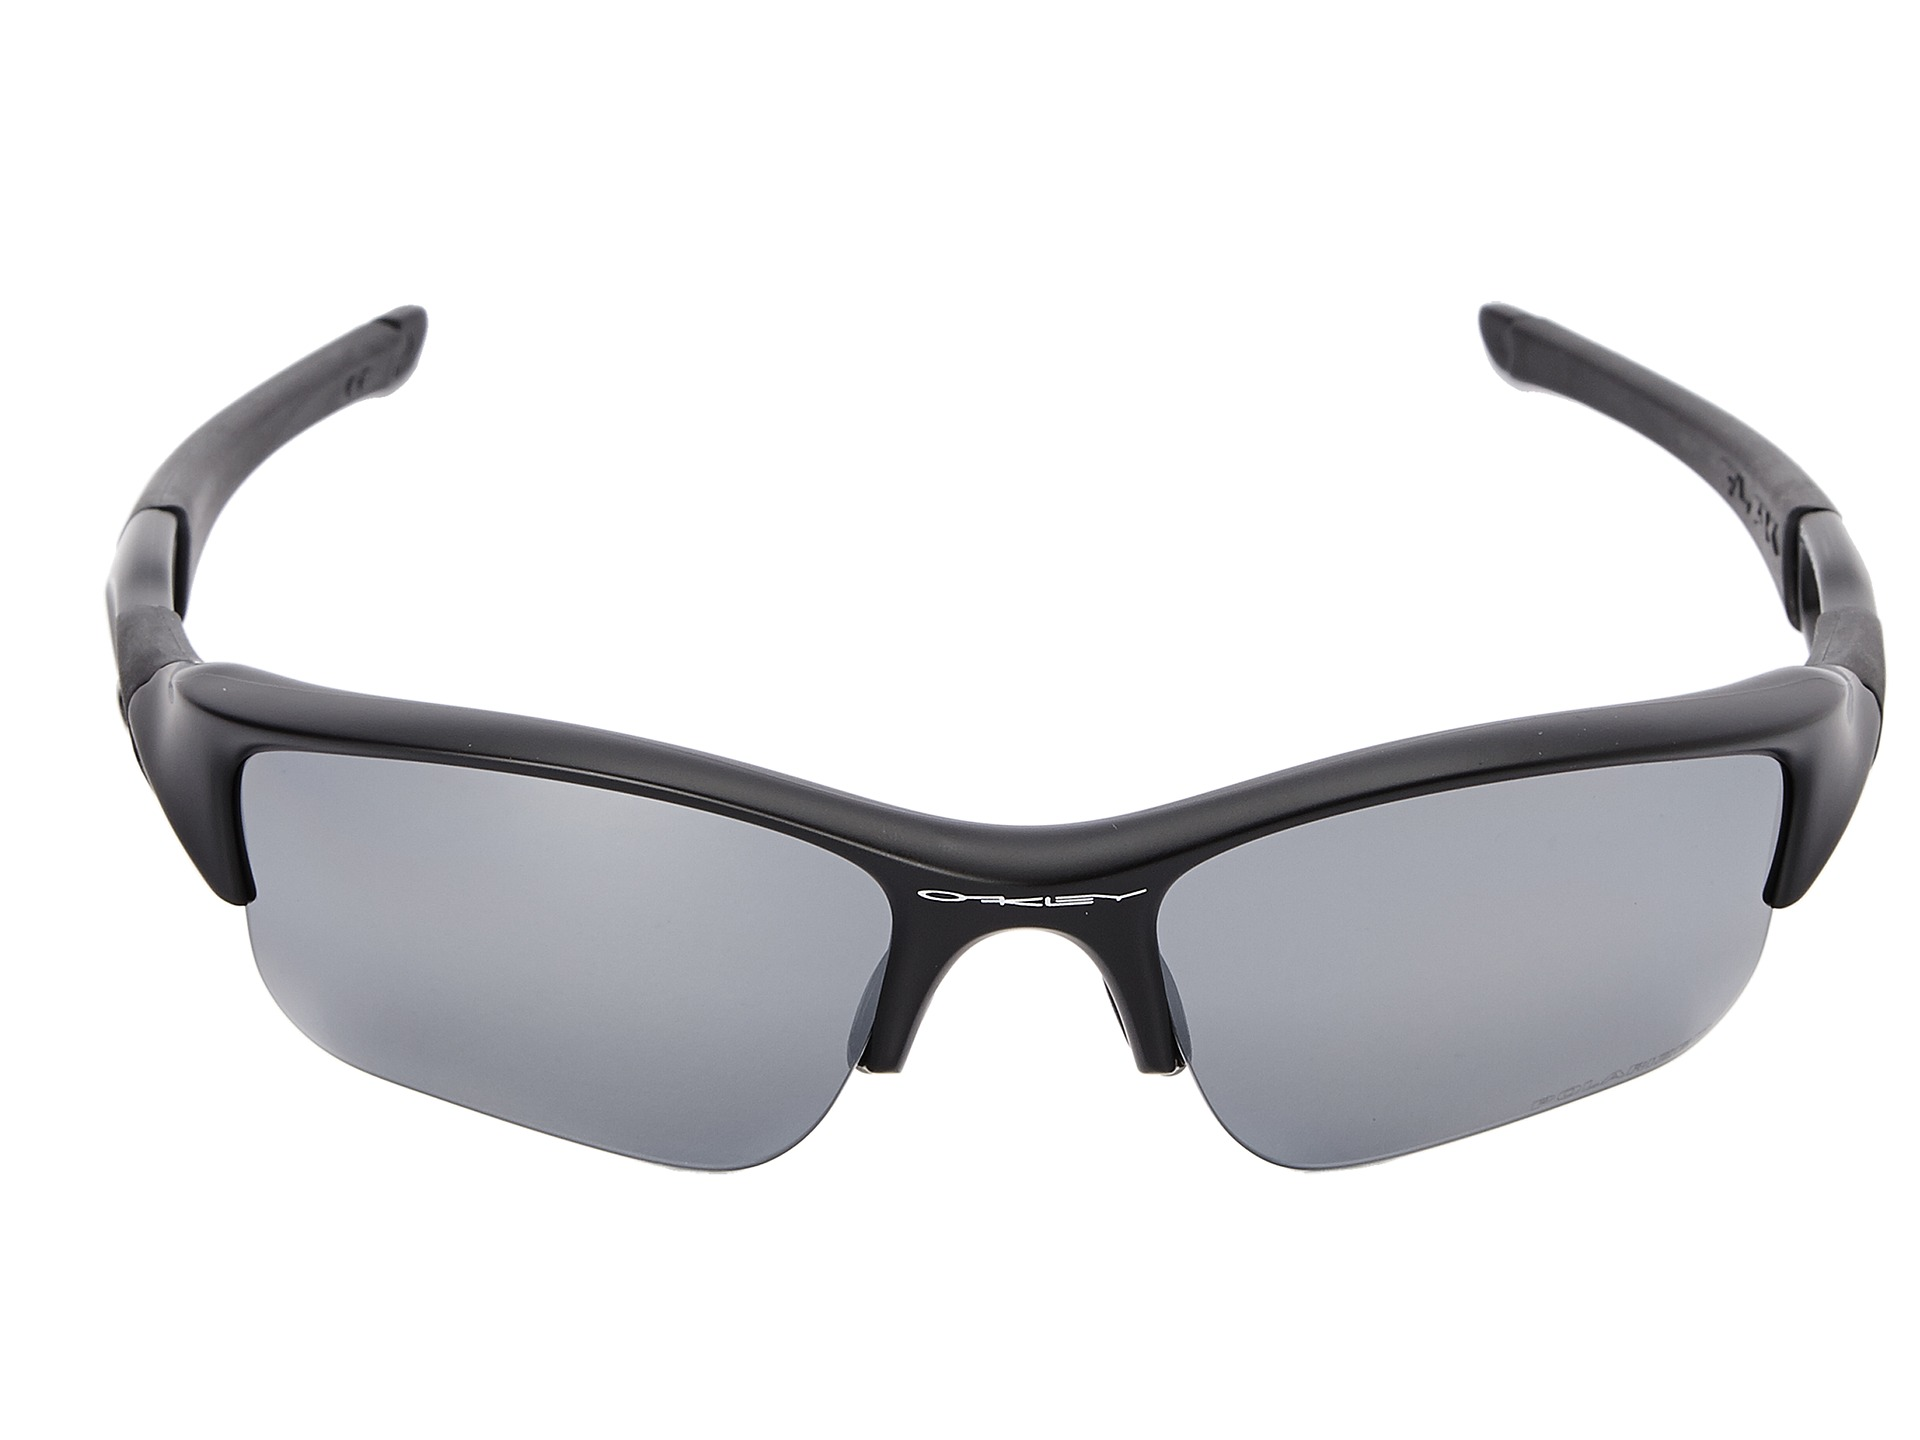 ... clearance oakley sunglasses,oakley half jacket 20 photochromic ...